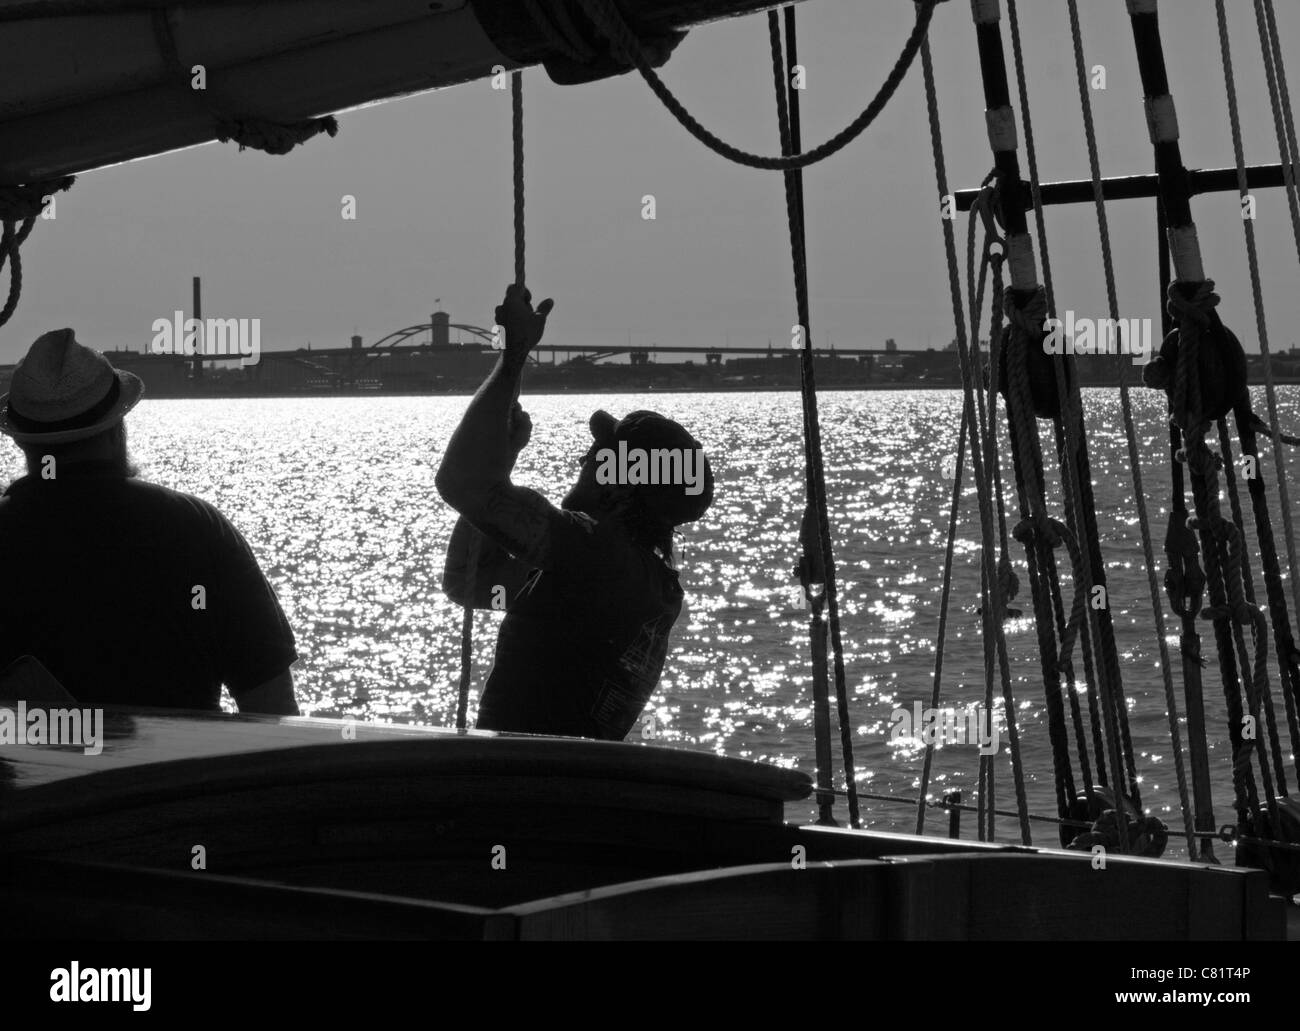 A crew member of the S/V Denis Sullivan pulls on a rope to help hoist a sail. - Stock Image